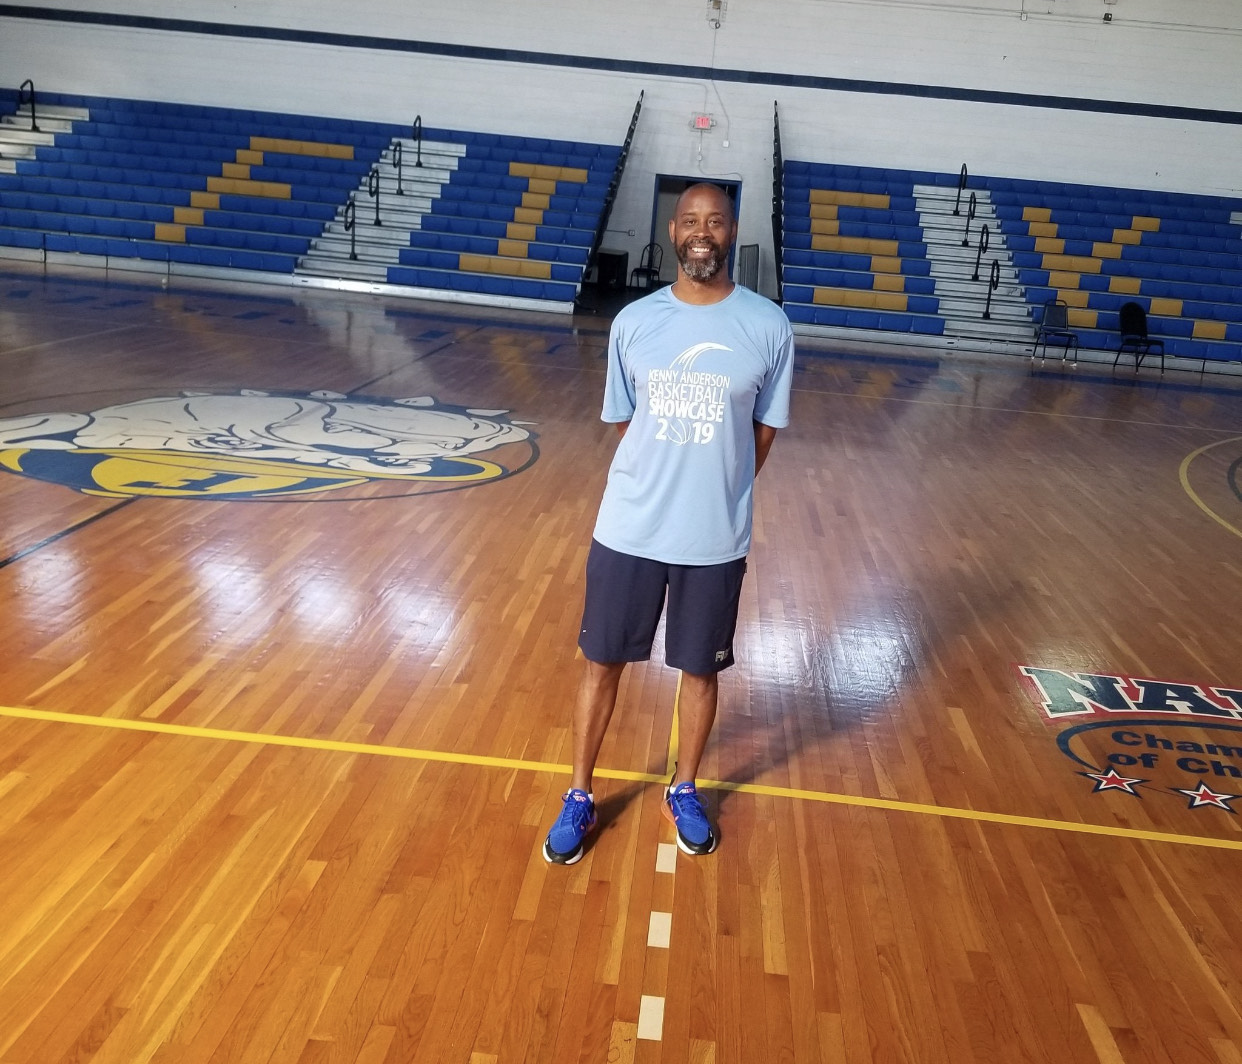 Former NBA Player is now in year 3 as Head Coach at Fisk University HBCU Men's Basketball